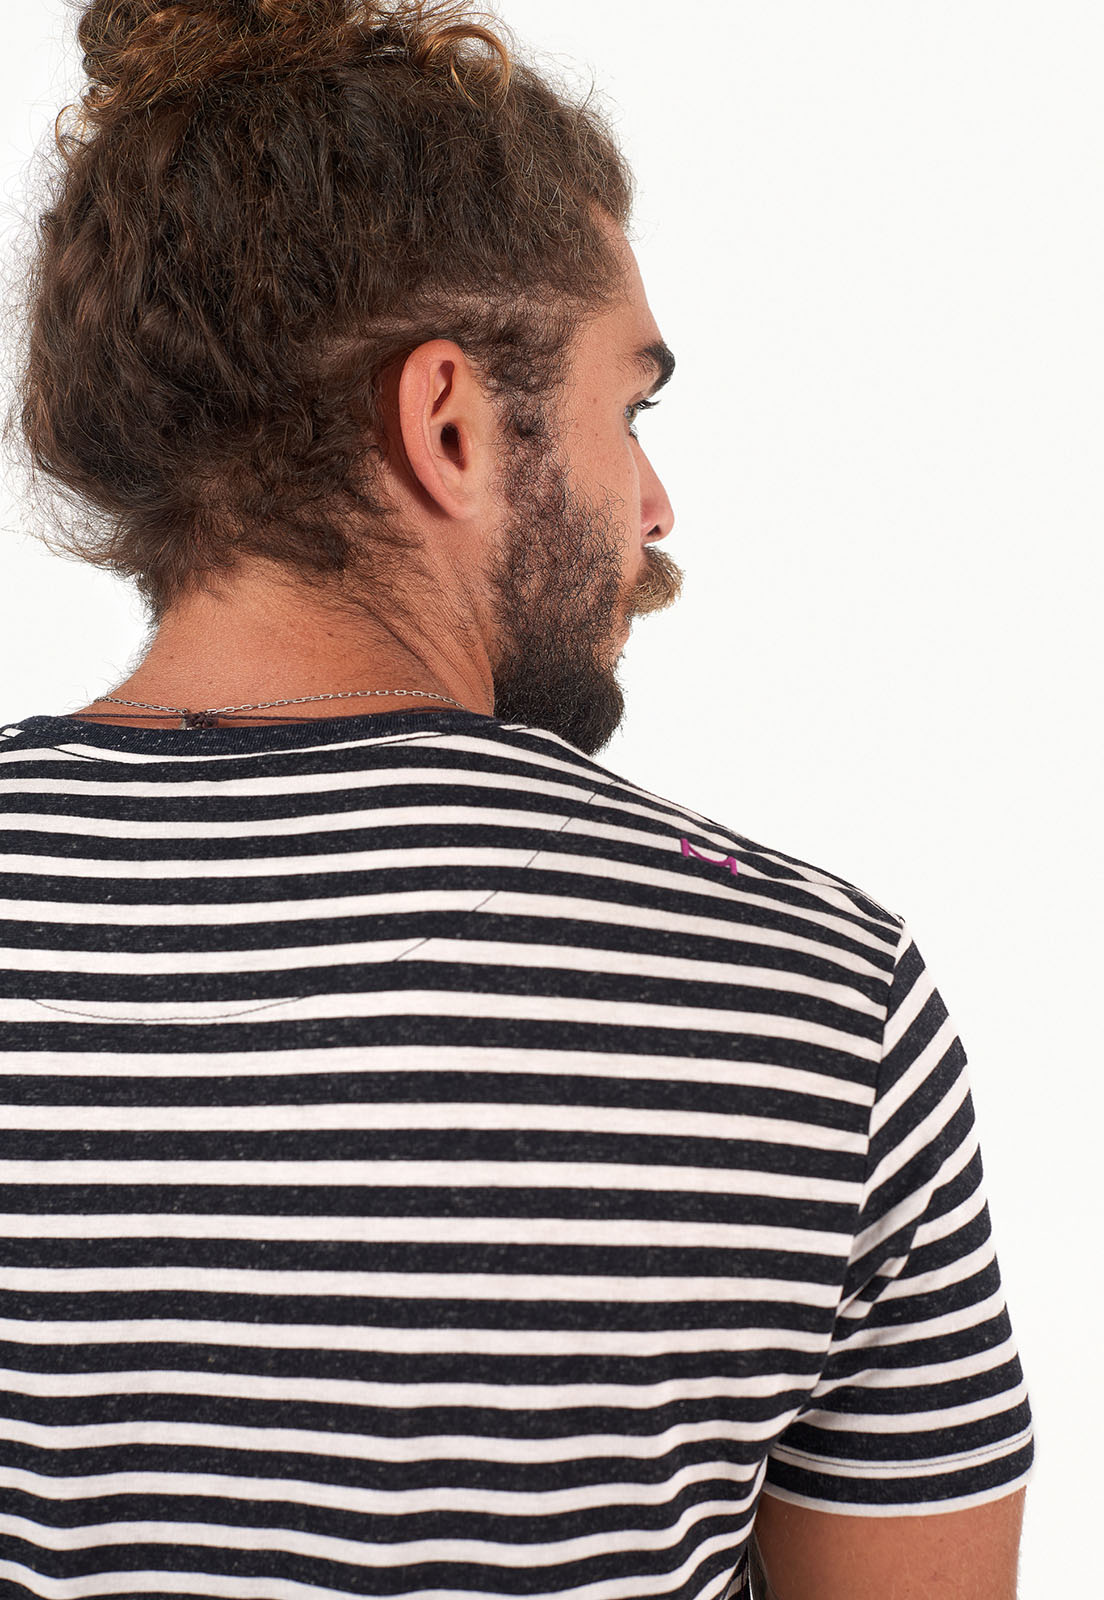 T-Shirt Riviera melty  - melty surf & Co.